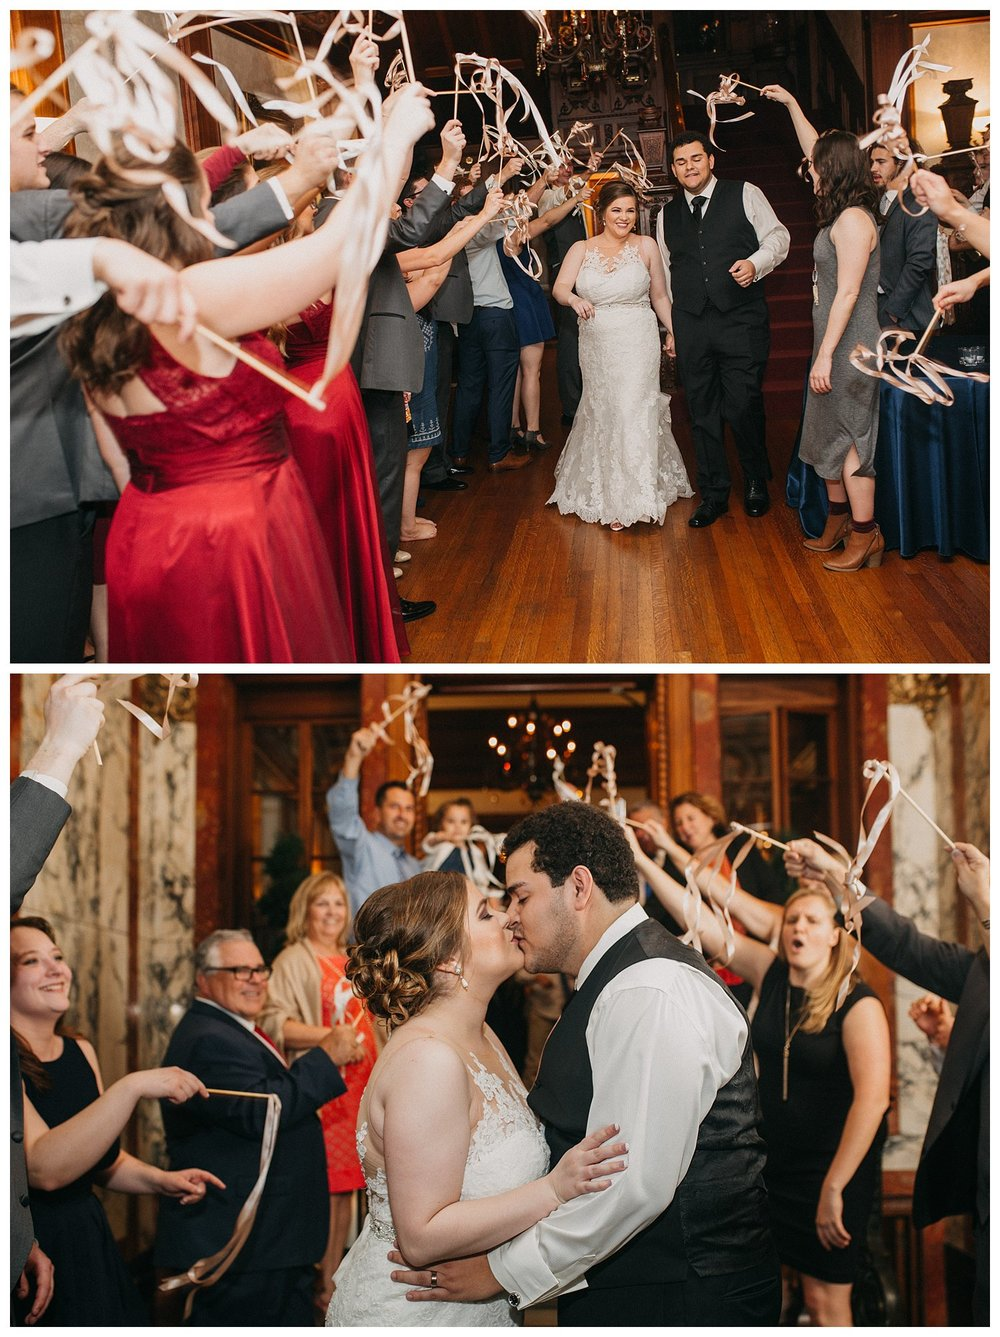 Kelsey_Diane_Photography_Loose_Mansion_Wedding_Photography_Kansas_City_Victor_Lyndsay_0176.jpg